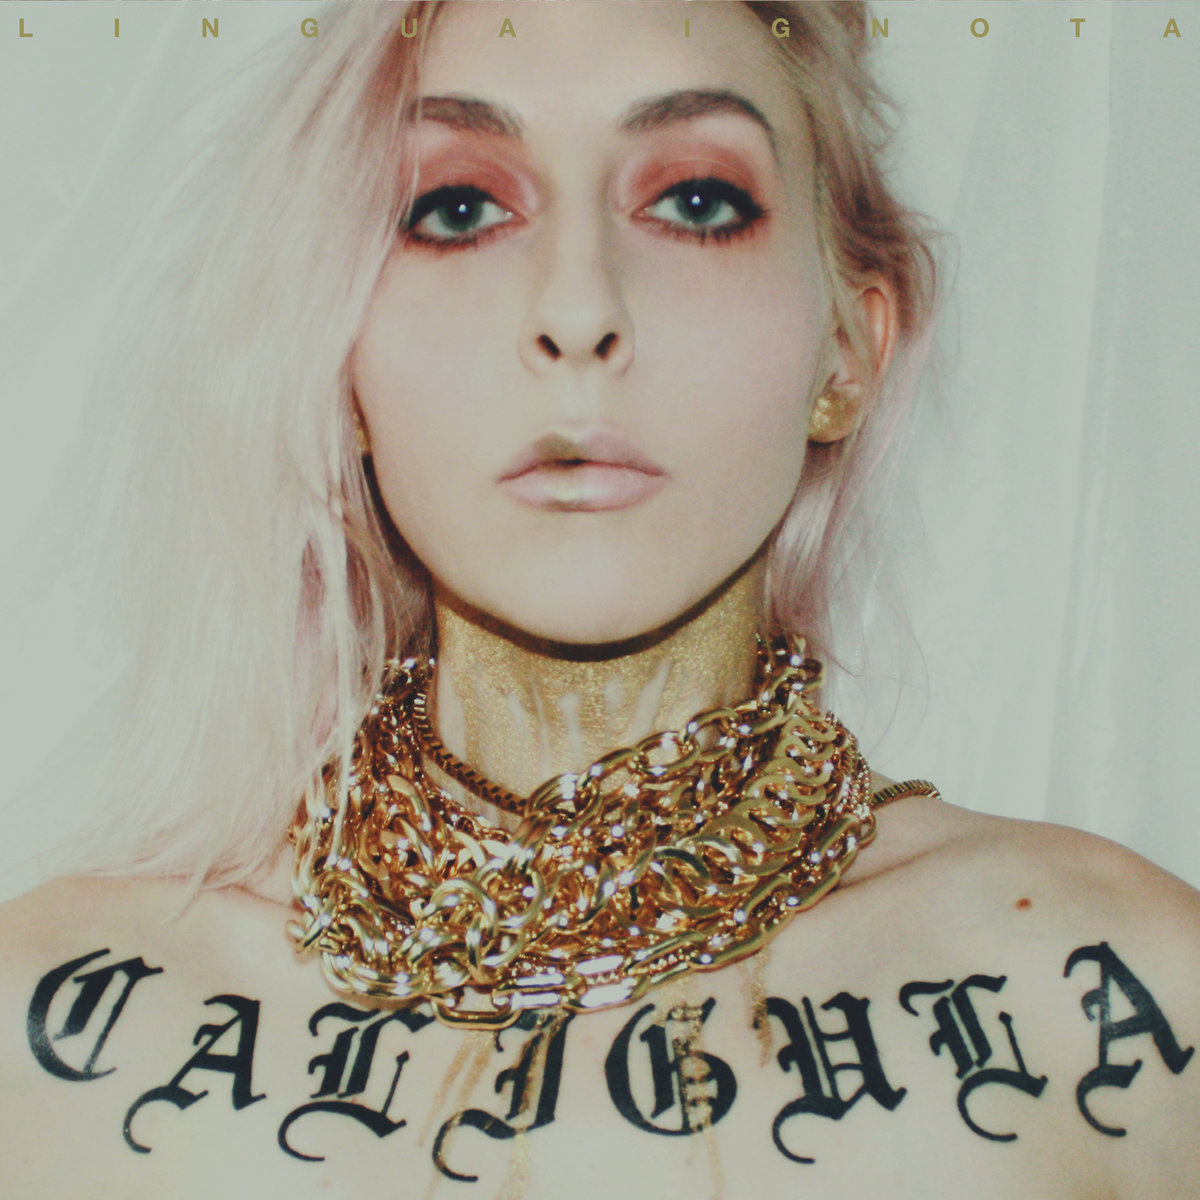 Image result for Caligula - Lingua Ignota